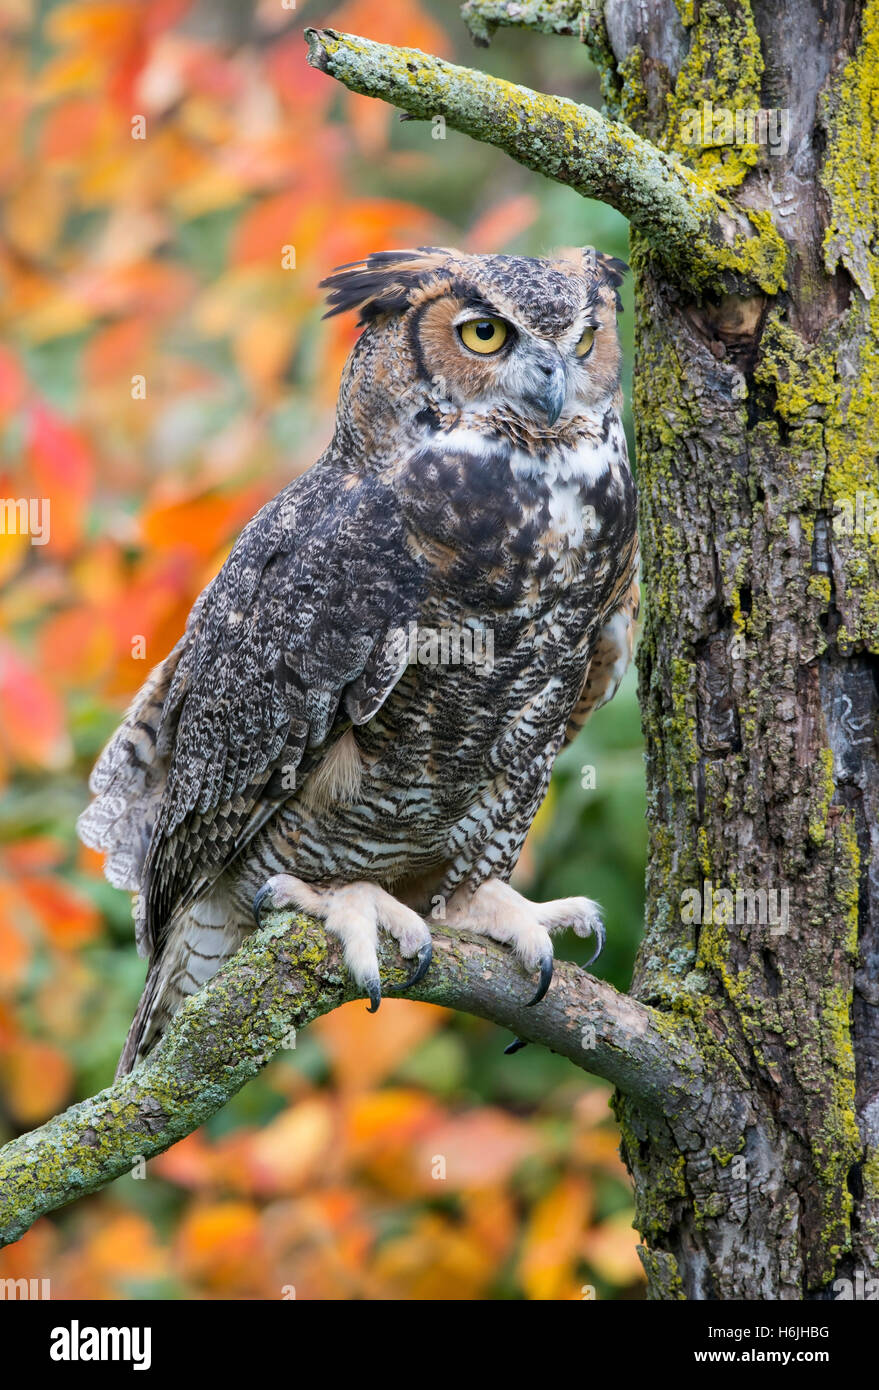 Great Horned Owl Bubo virginianus perched on tree limb, Autumn, Eastern North America - Stock Image